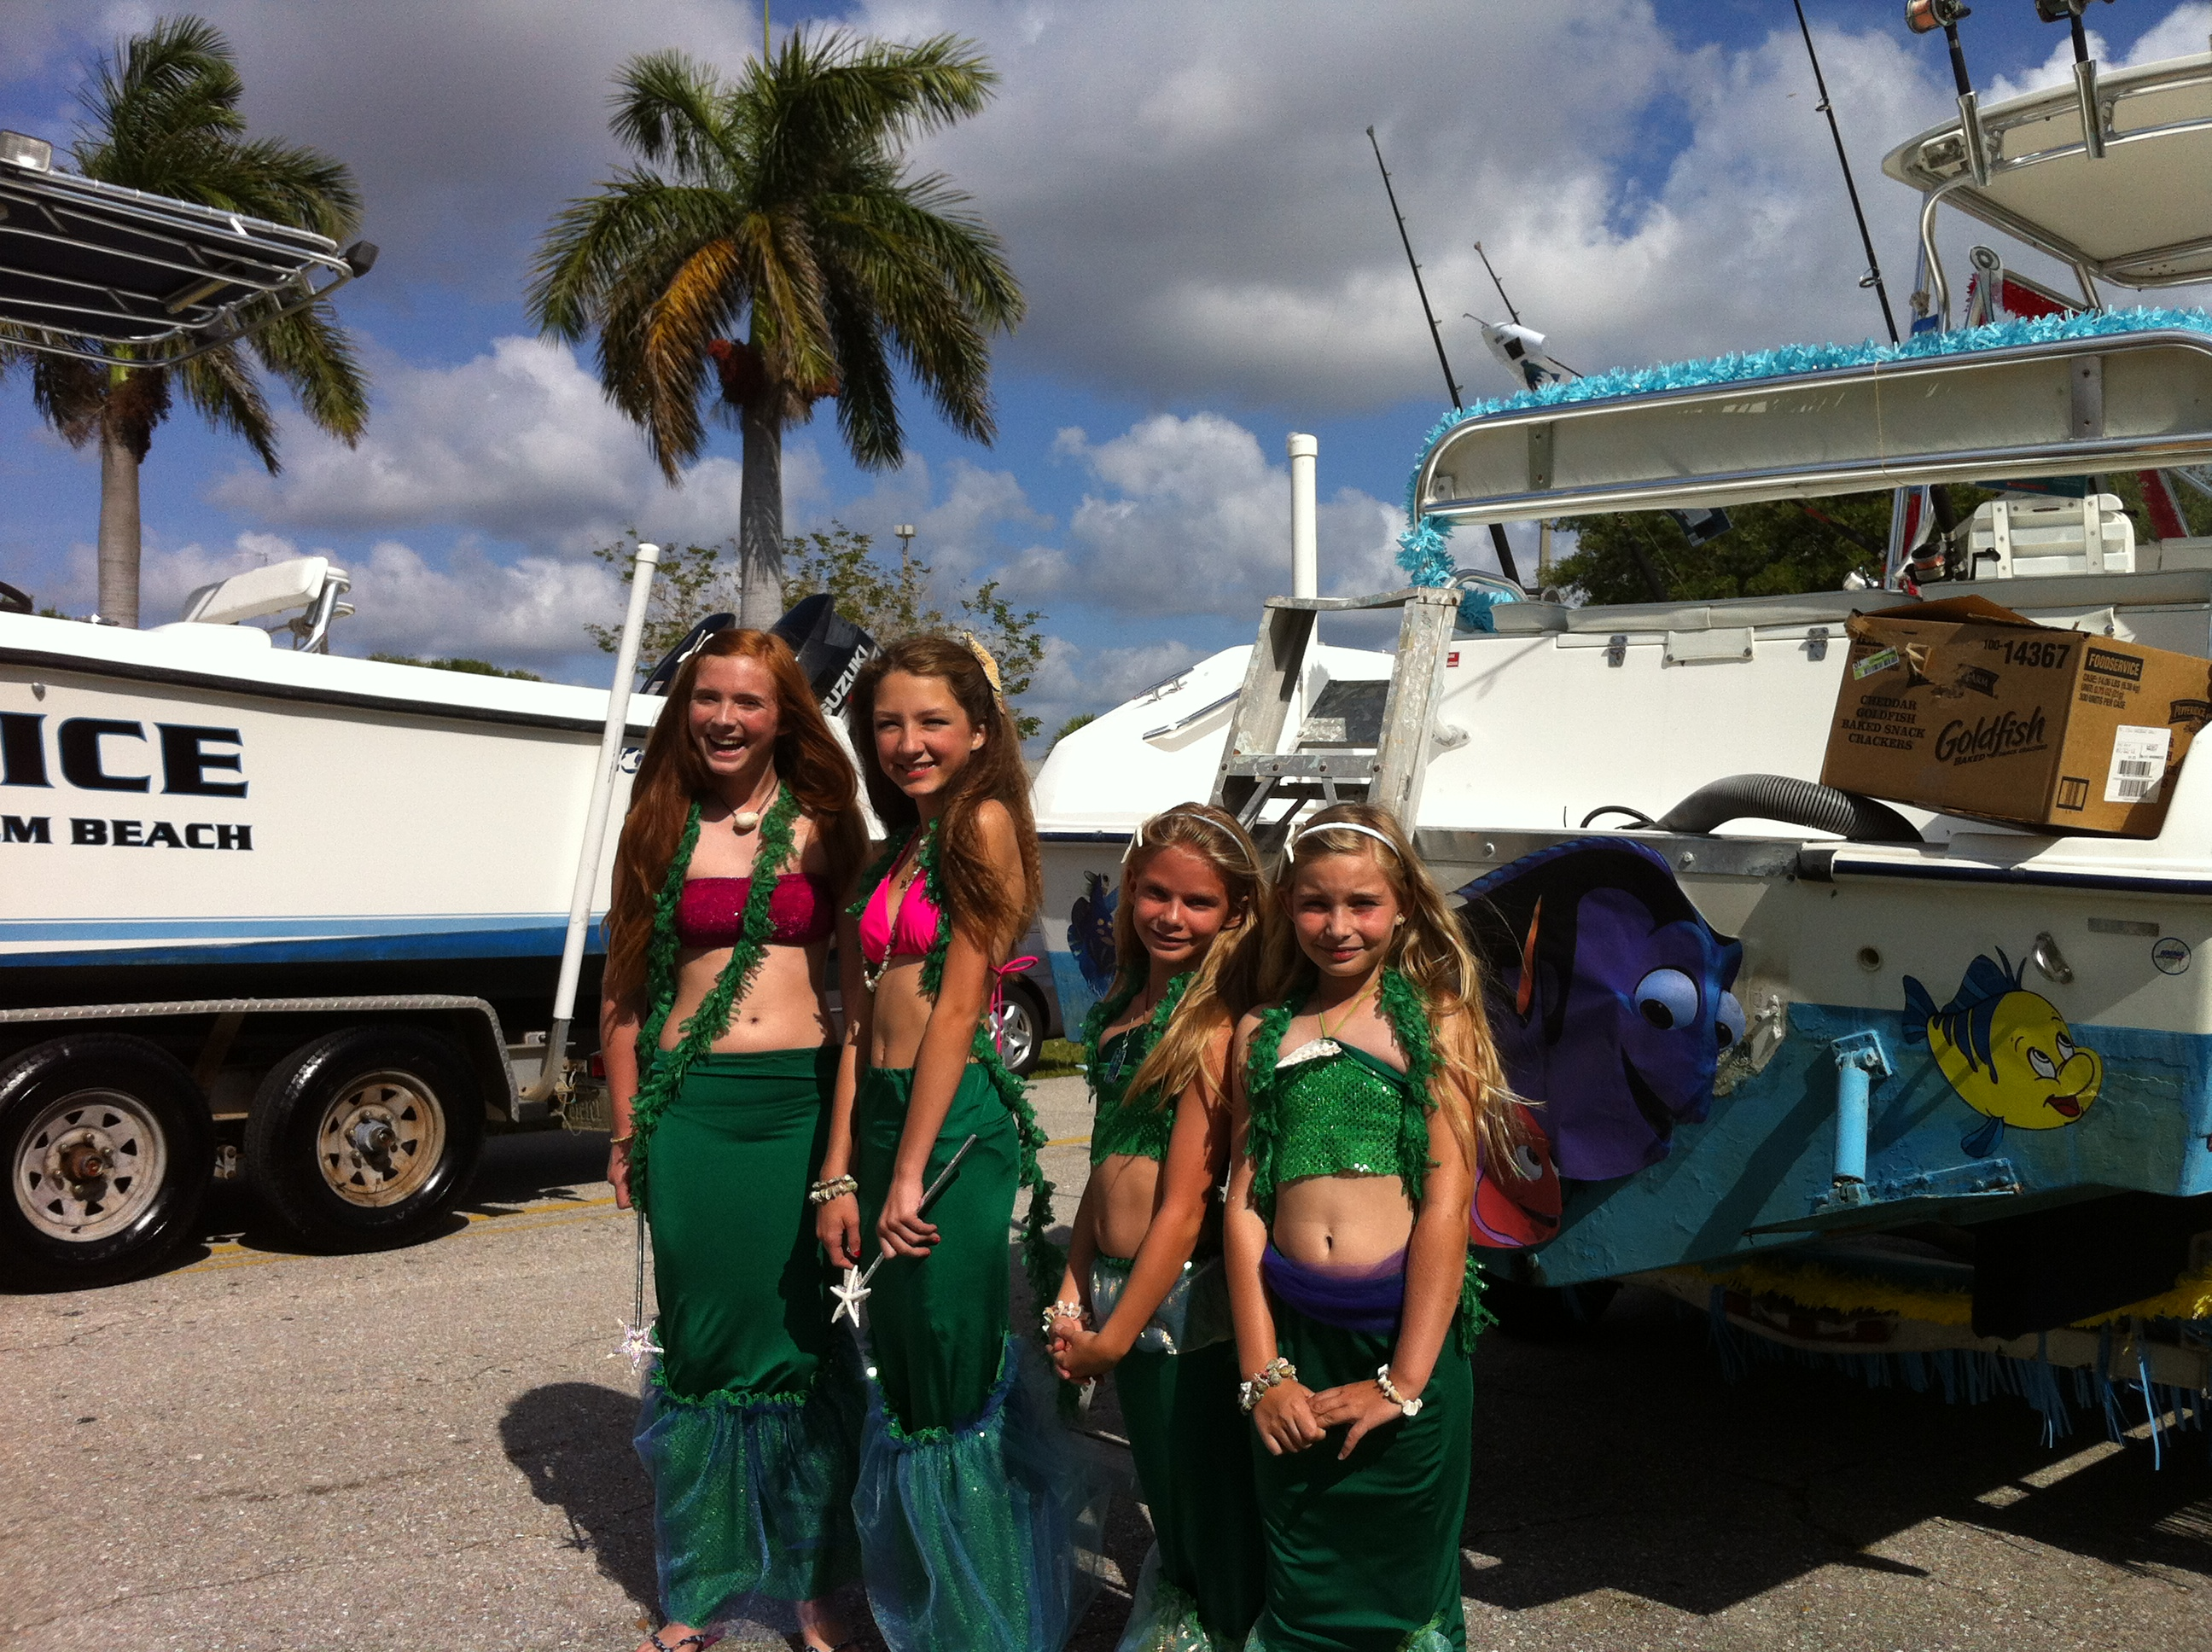 The sea ladies pose together for a photo